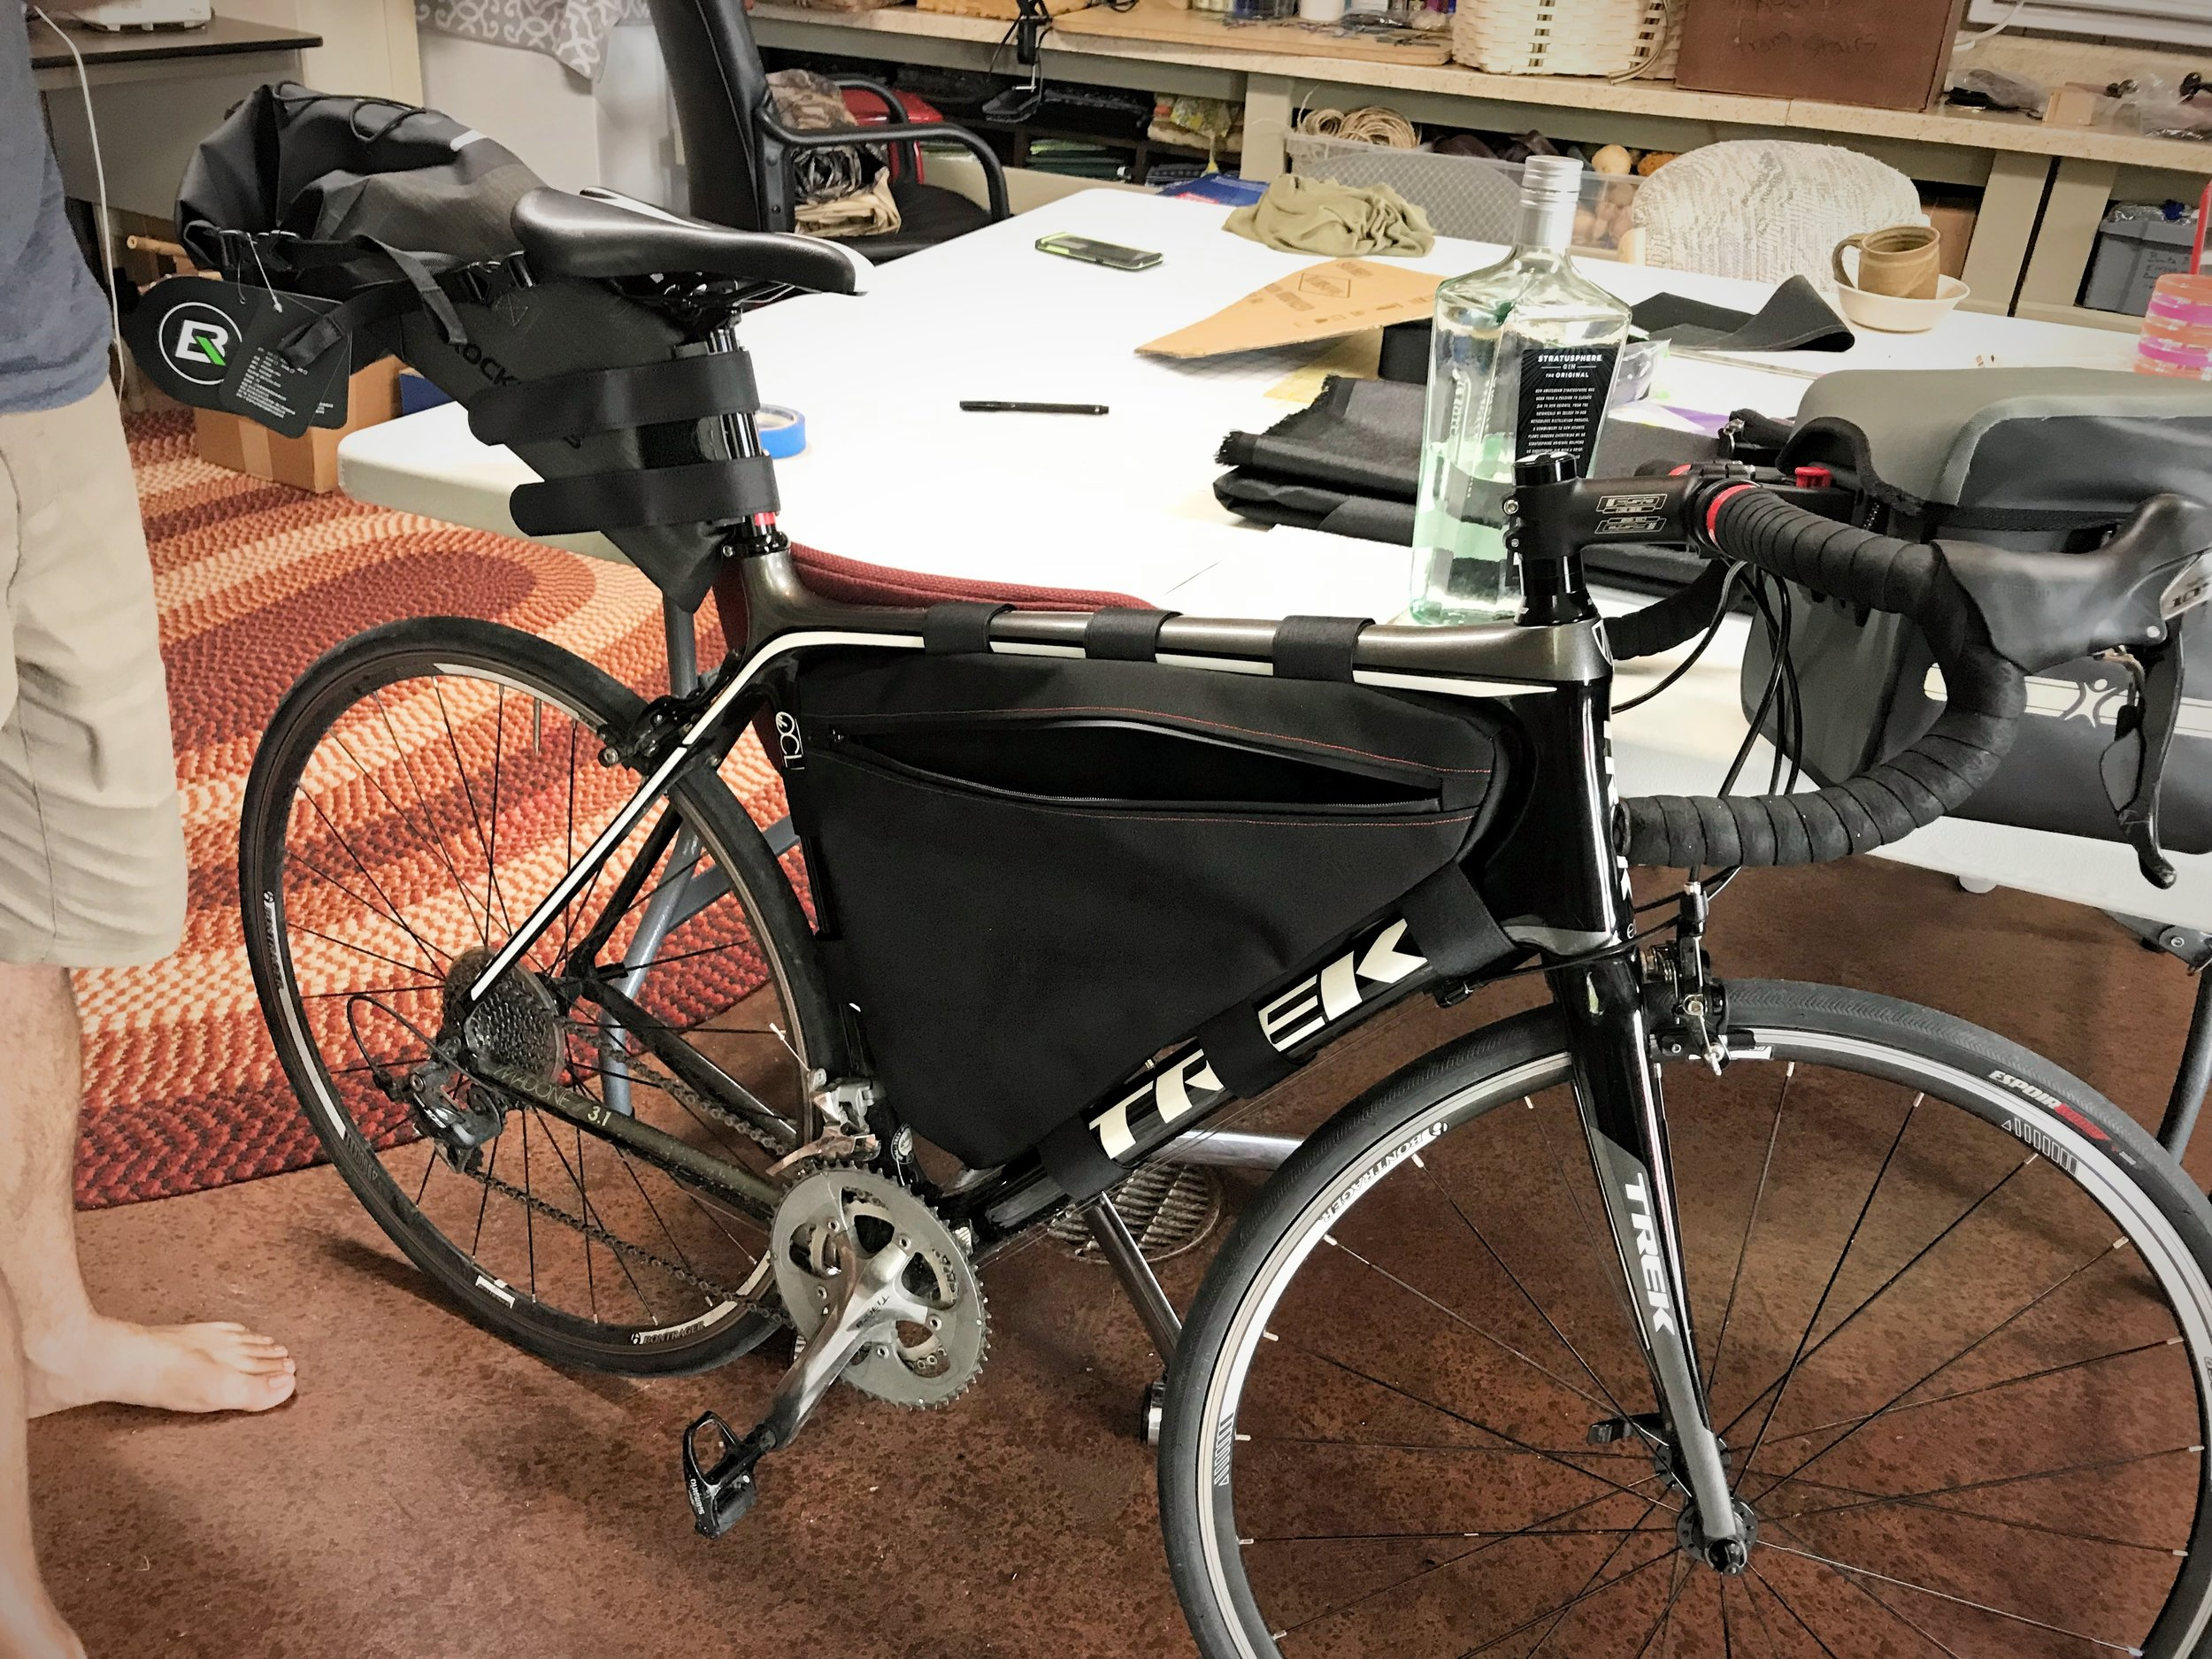 Ian's finished frame pack fits his bike nearly perfectly, unlike any bag we could buy.